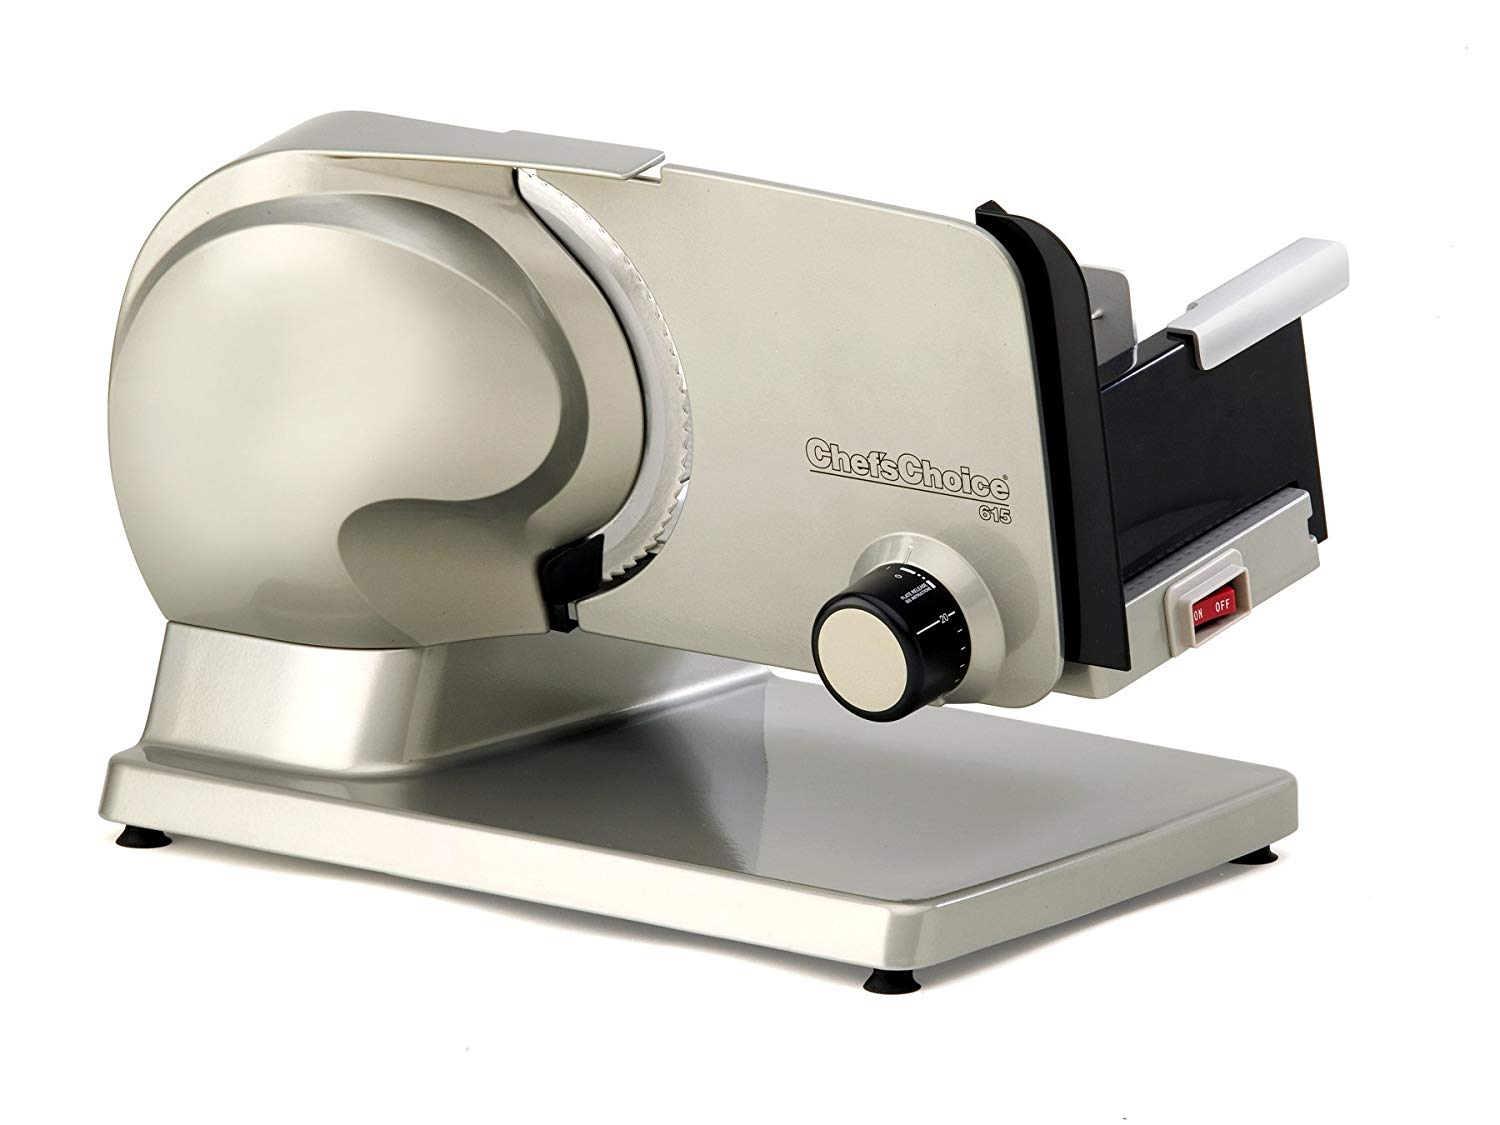 Chef's choice 615 premium home food slicer